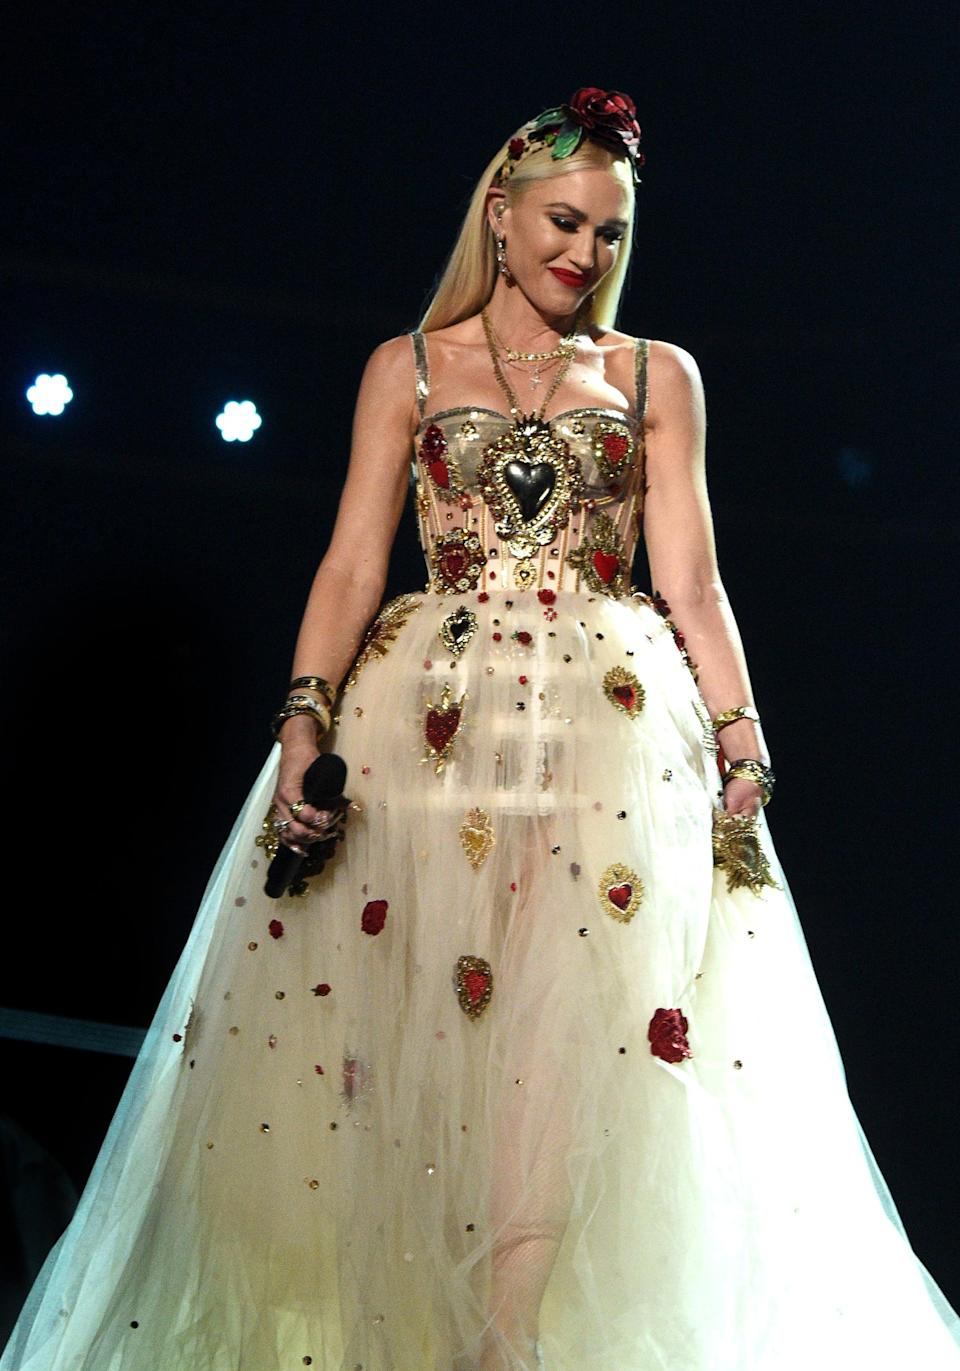 <p>Wearing a heart-embellished Dolce &amp; Gabbana gown at the 2020 Grammys.</p>